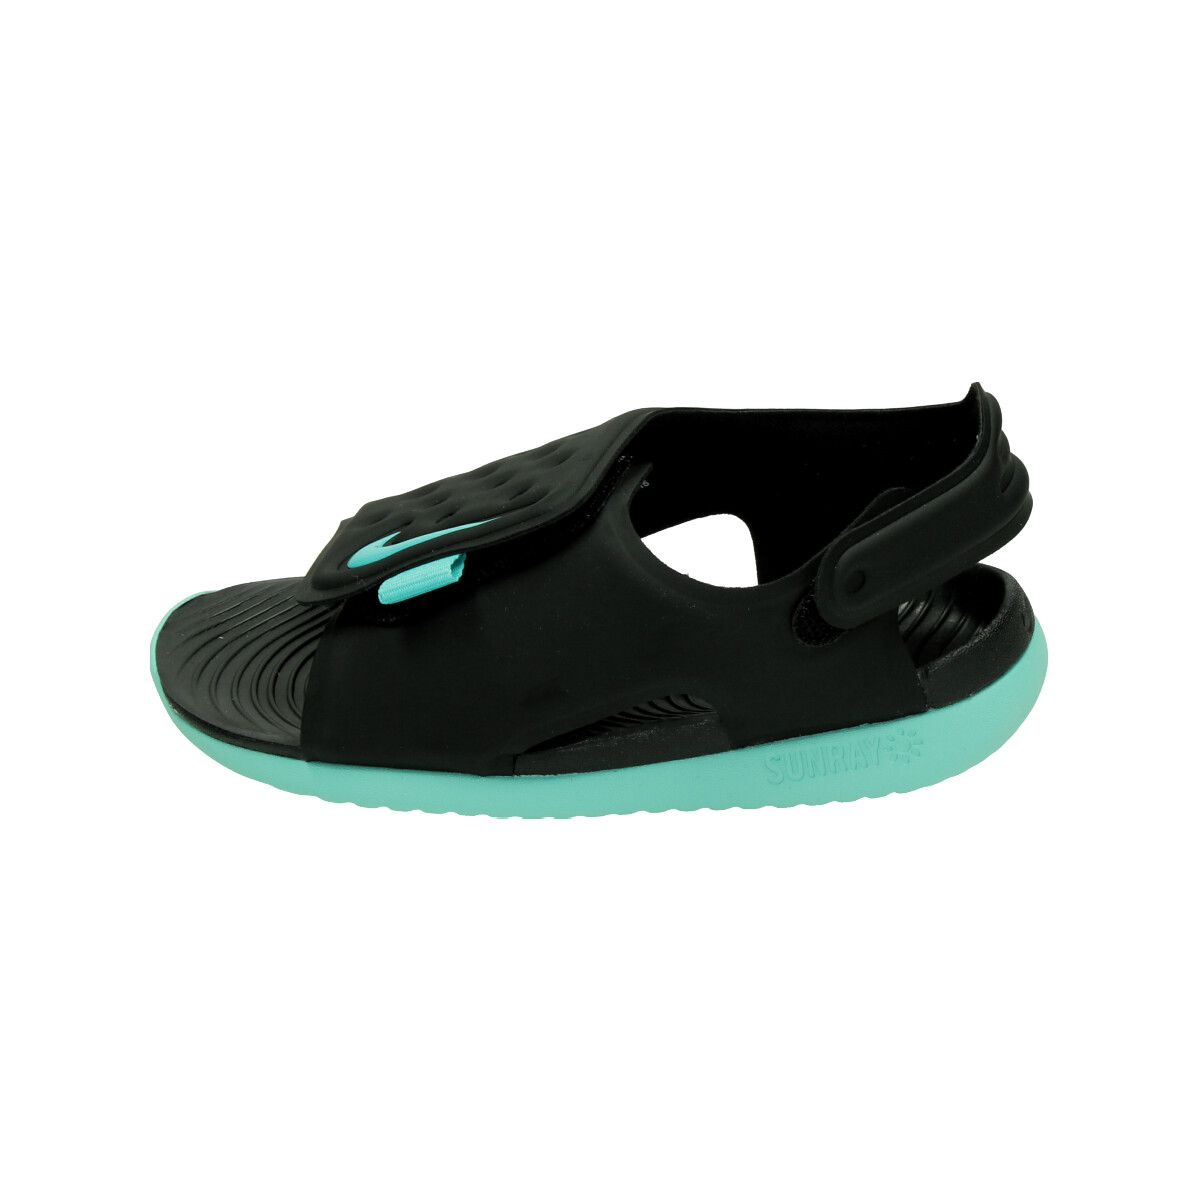 23f77ad10ce Nike Sunray Adjust 5 Peuter sandalen. AJ9077 004 Black Hyper Jade Tropical.  Product afbeelding Product afbeelding ...